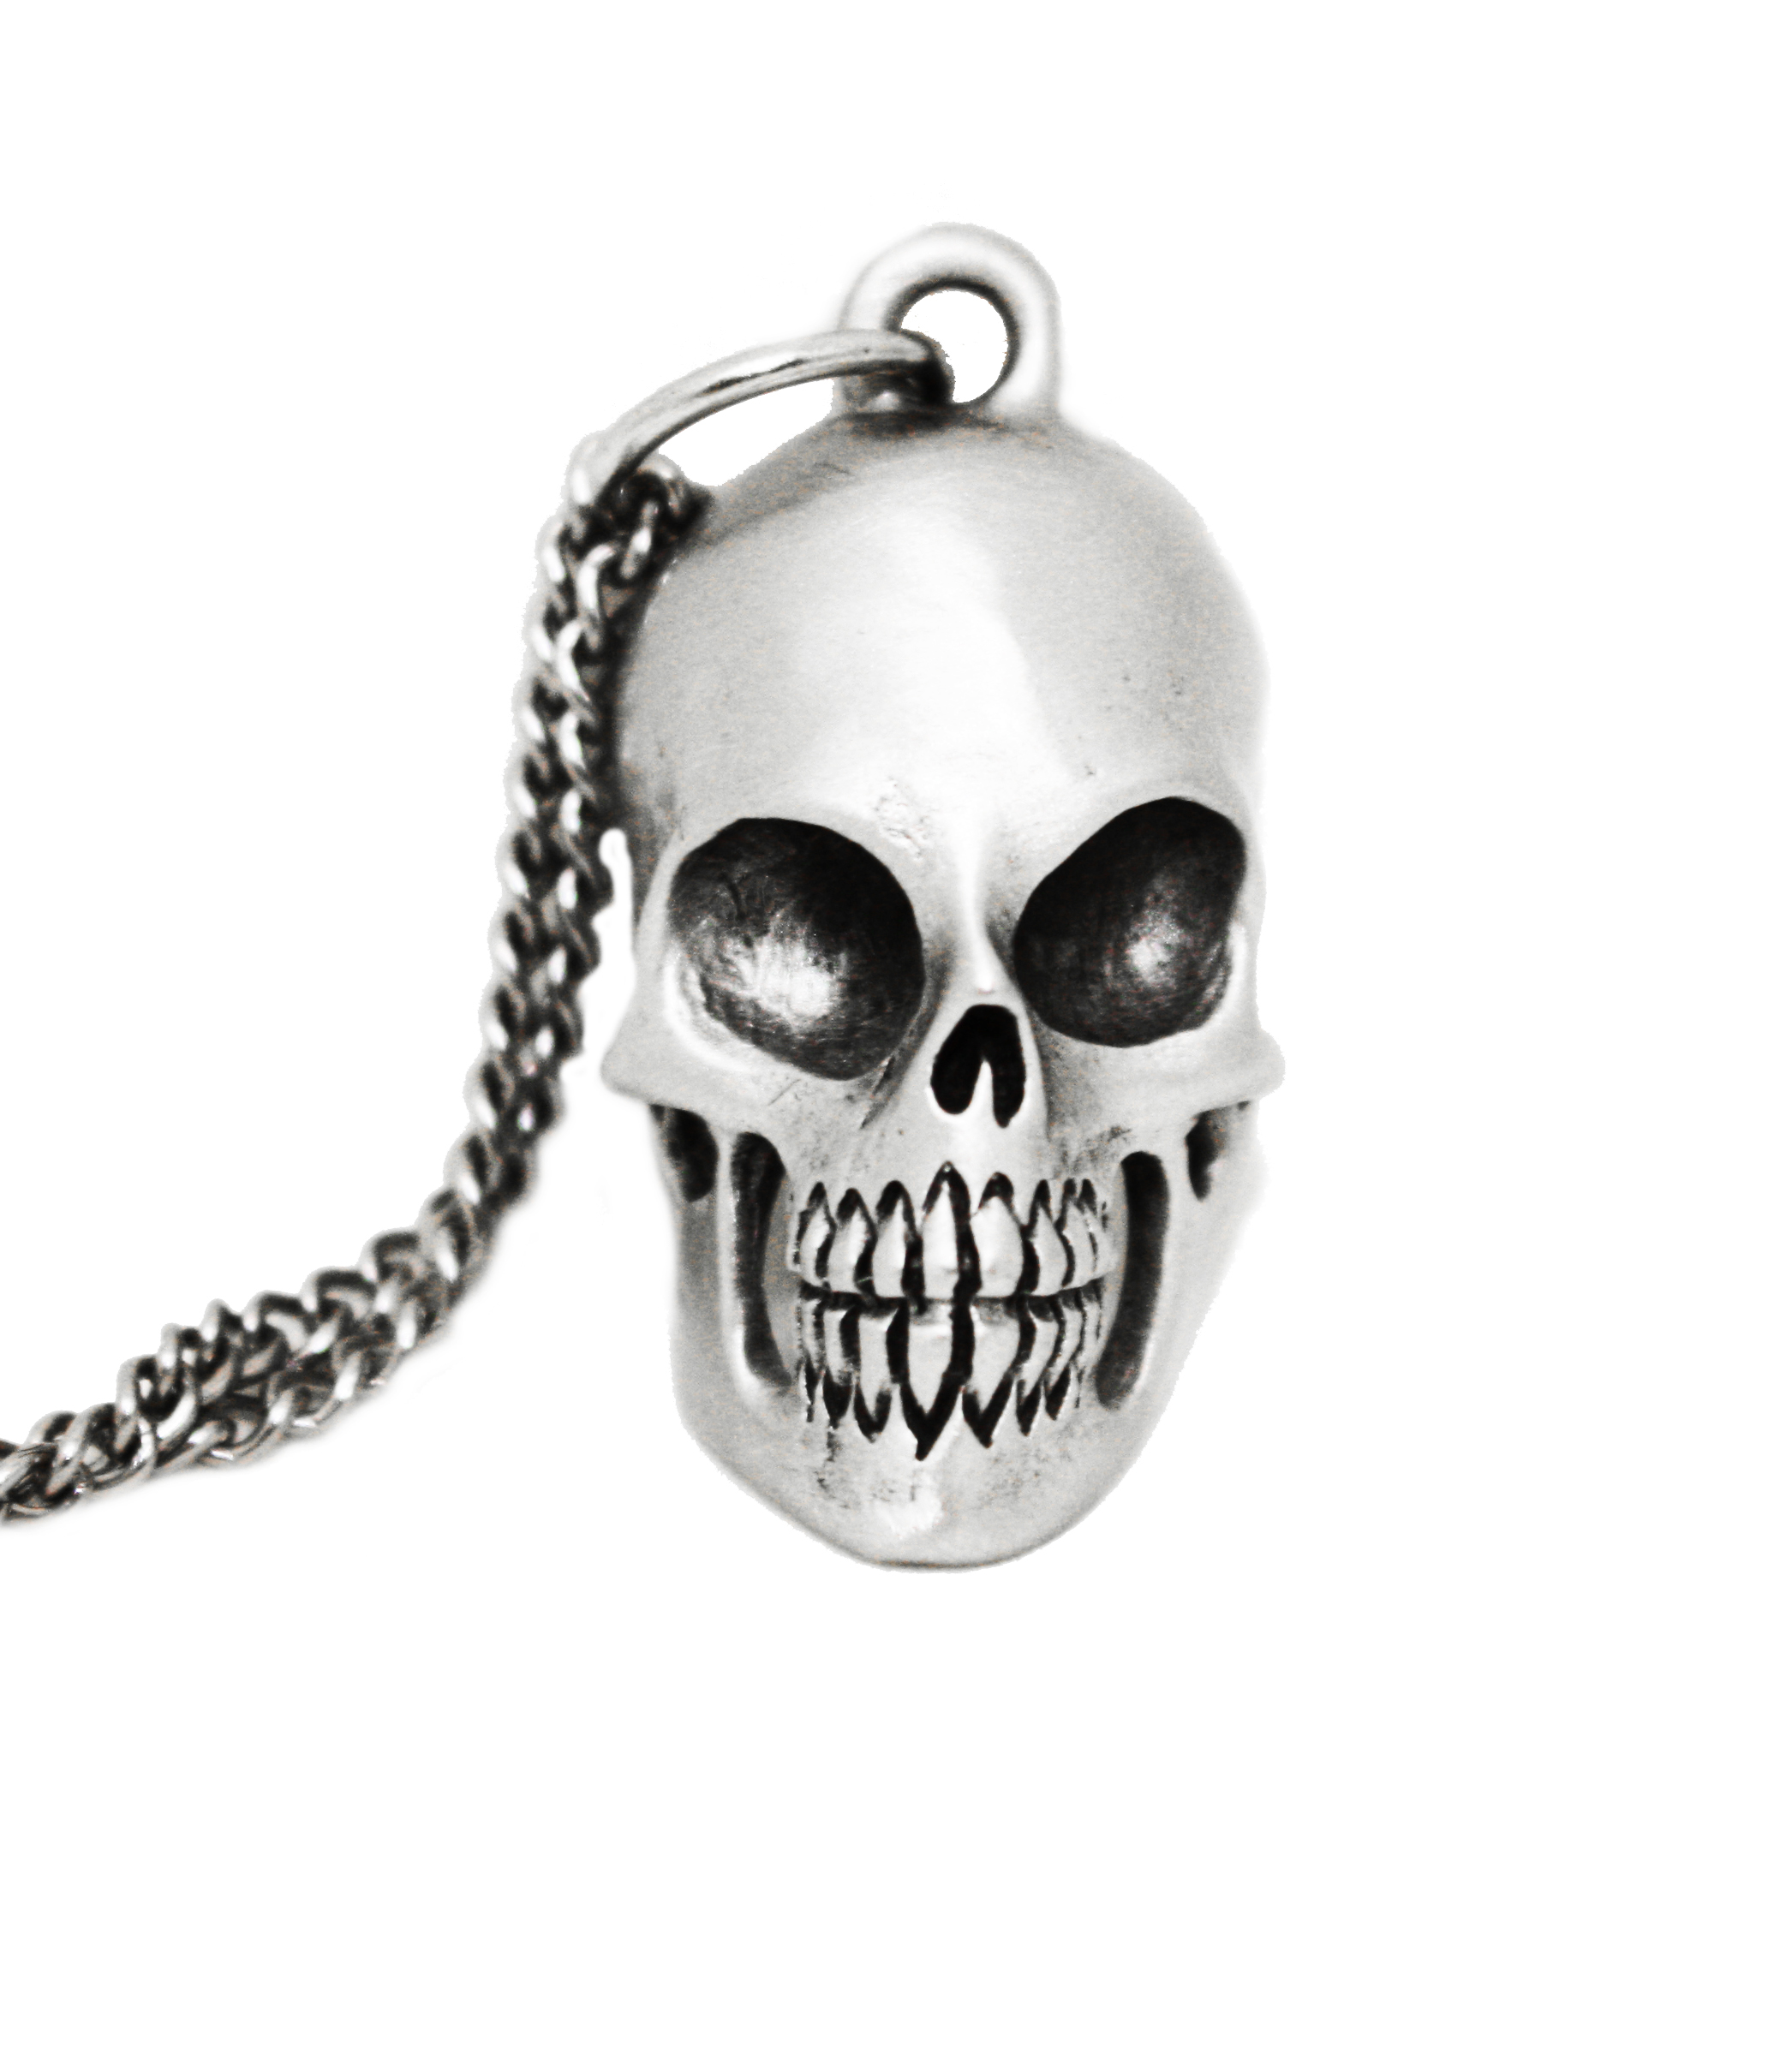 Business Skull Pendant - Pewter on stainless chain. MSRP $25